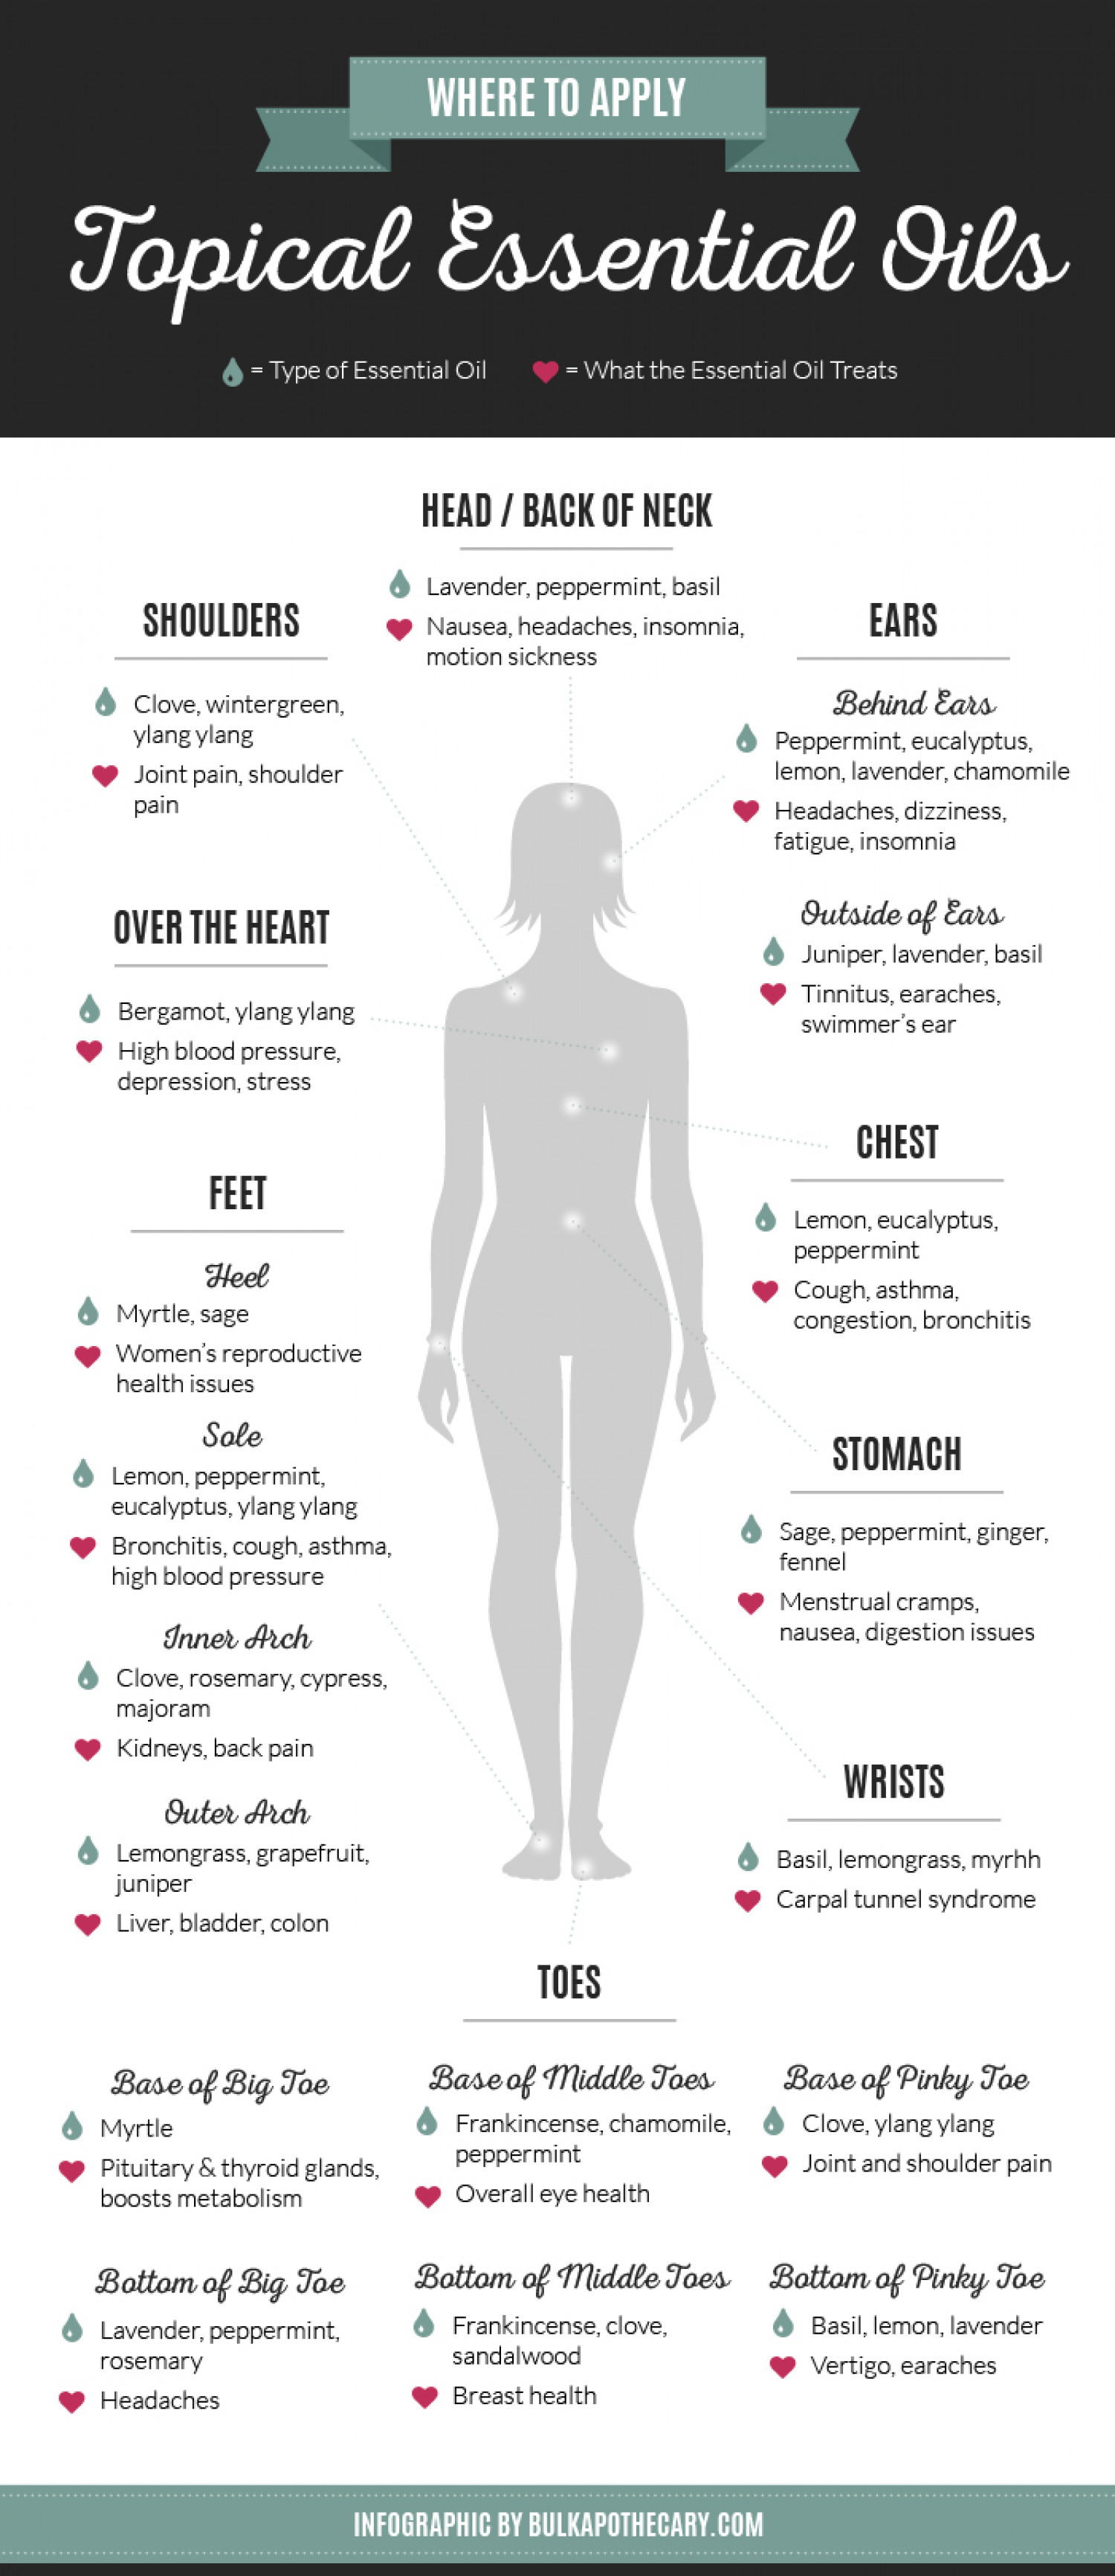 Where to Apply Topical Essential Oils Infographic